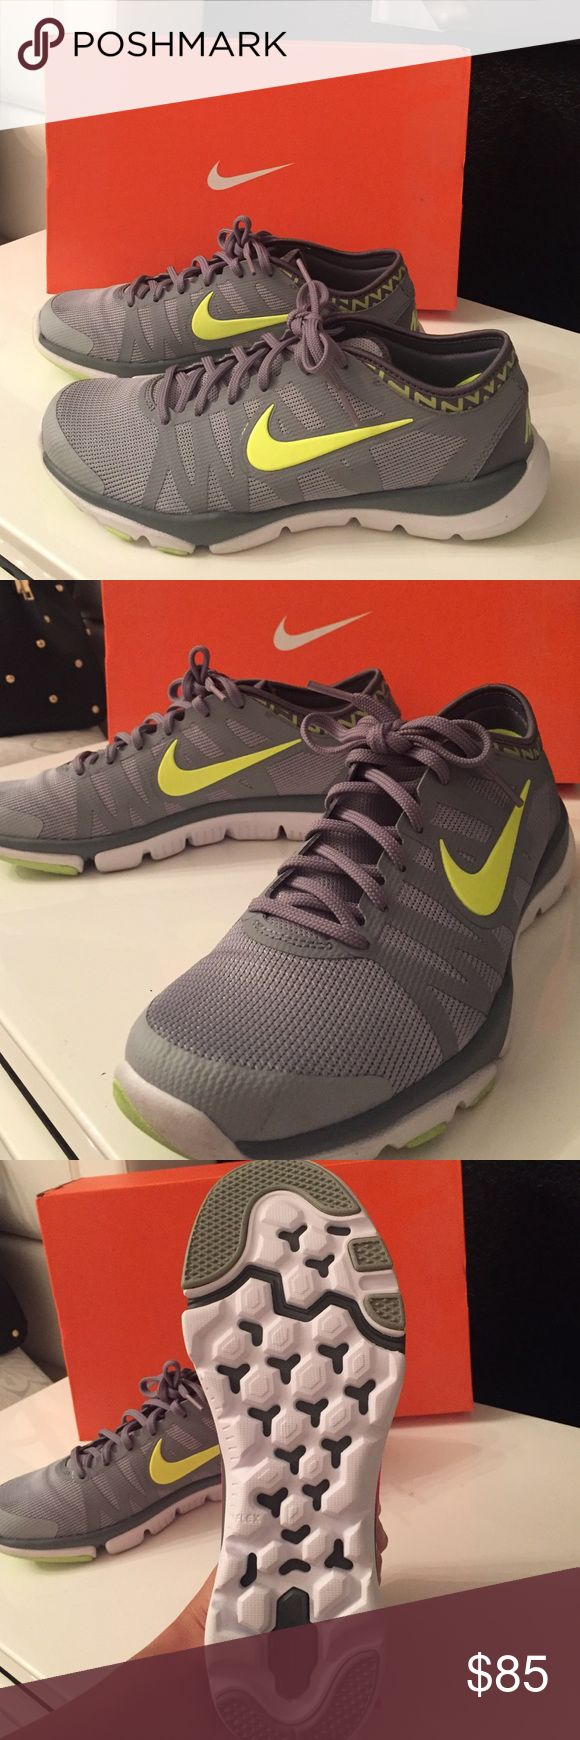 Nike Training Shoes NEW NIKE TRAINING FLEX SUPREME TR3 size: 8.5. 🔸I originally got these for $110 the lowest you can find them online is $90. Therefor $85 is my BEST PRICE at this moment! ❌NO TRADES❌ Nike Shoes Athletic Shoes